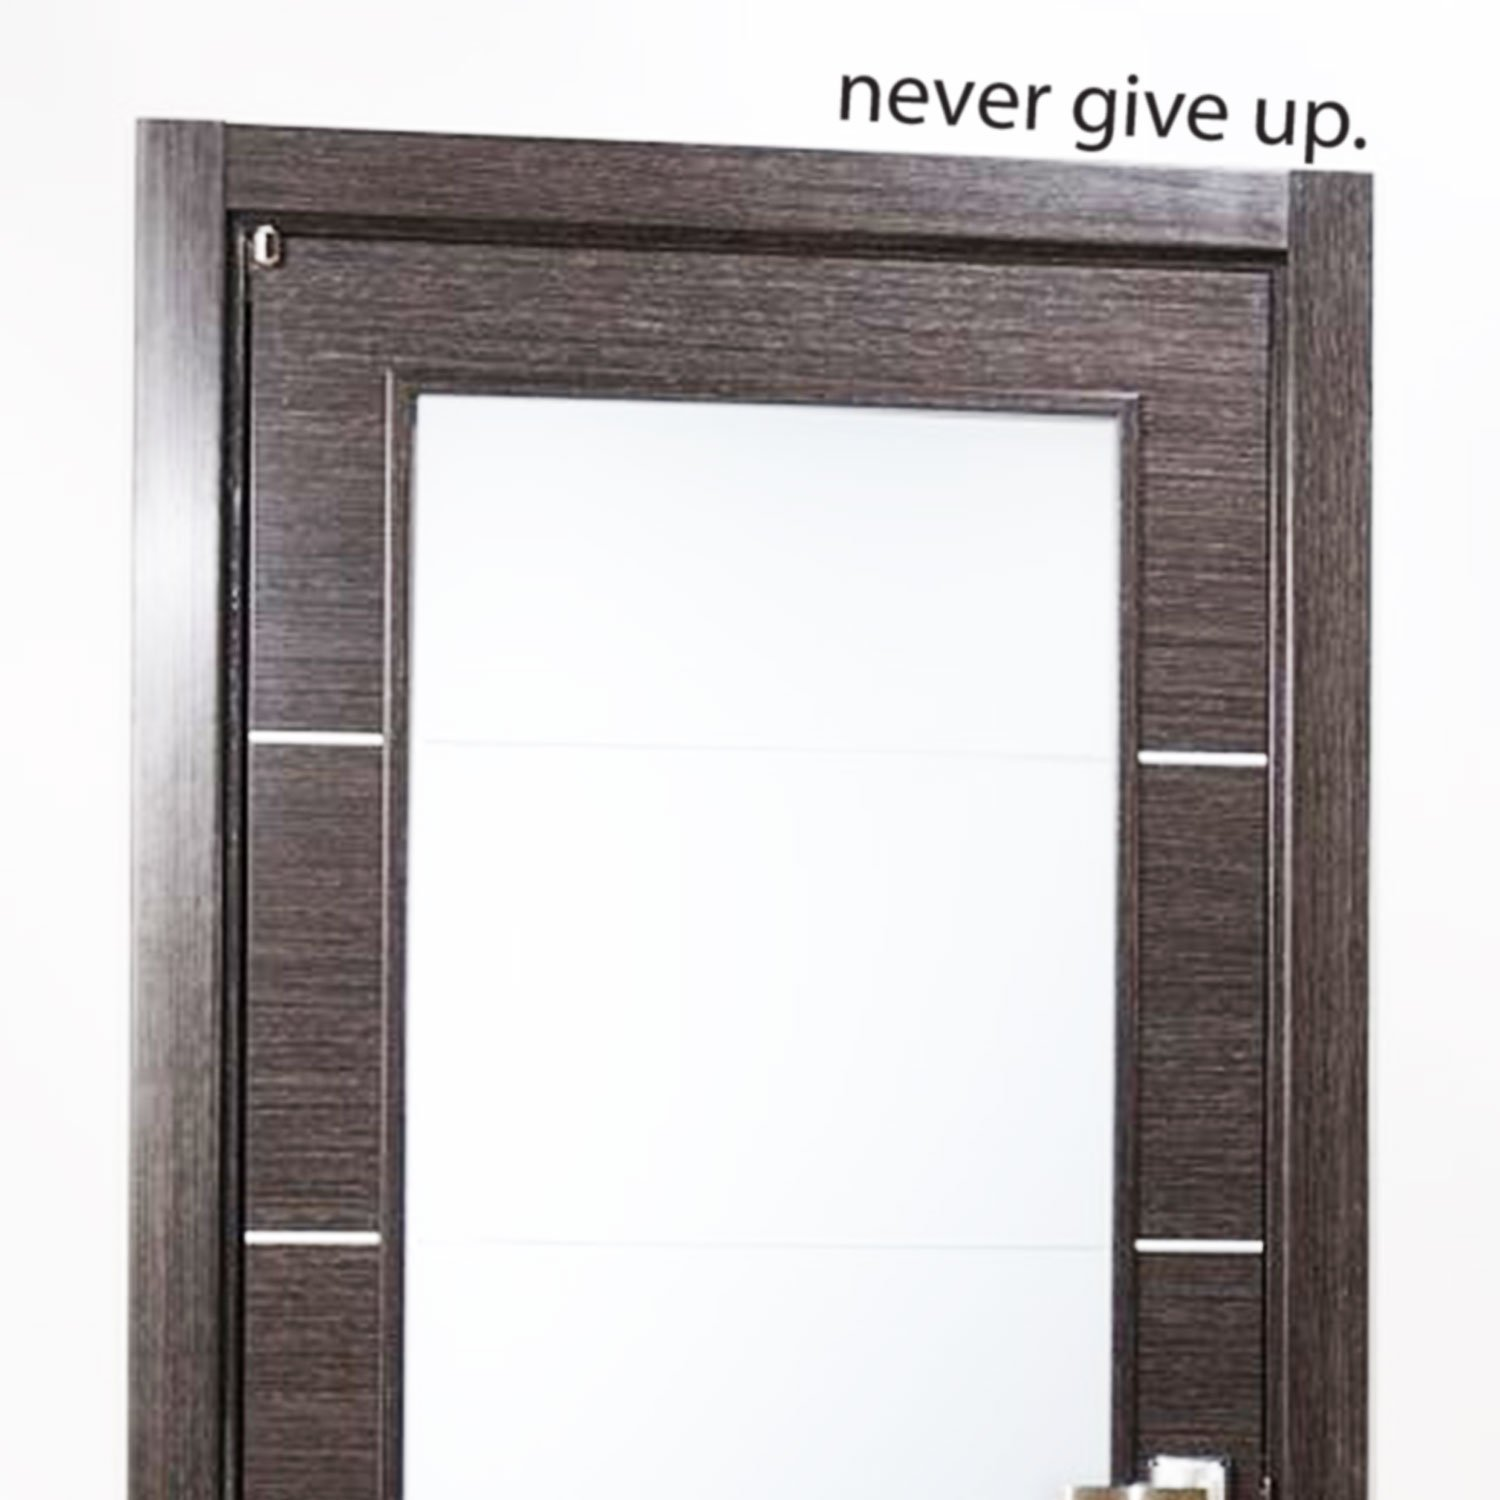 Never Give Up.. Over the Door Vinyl Wall Decal Sticker Art by Imprinted Designs (Image #2)